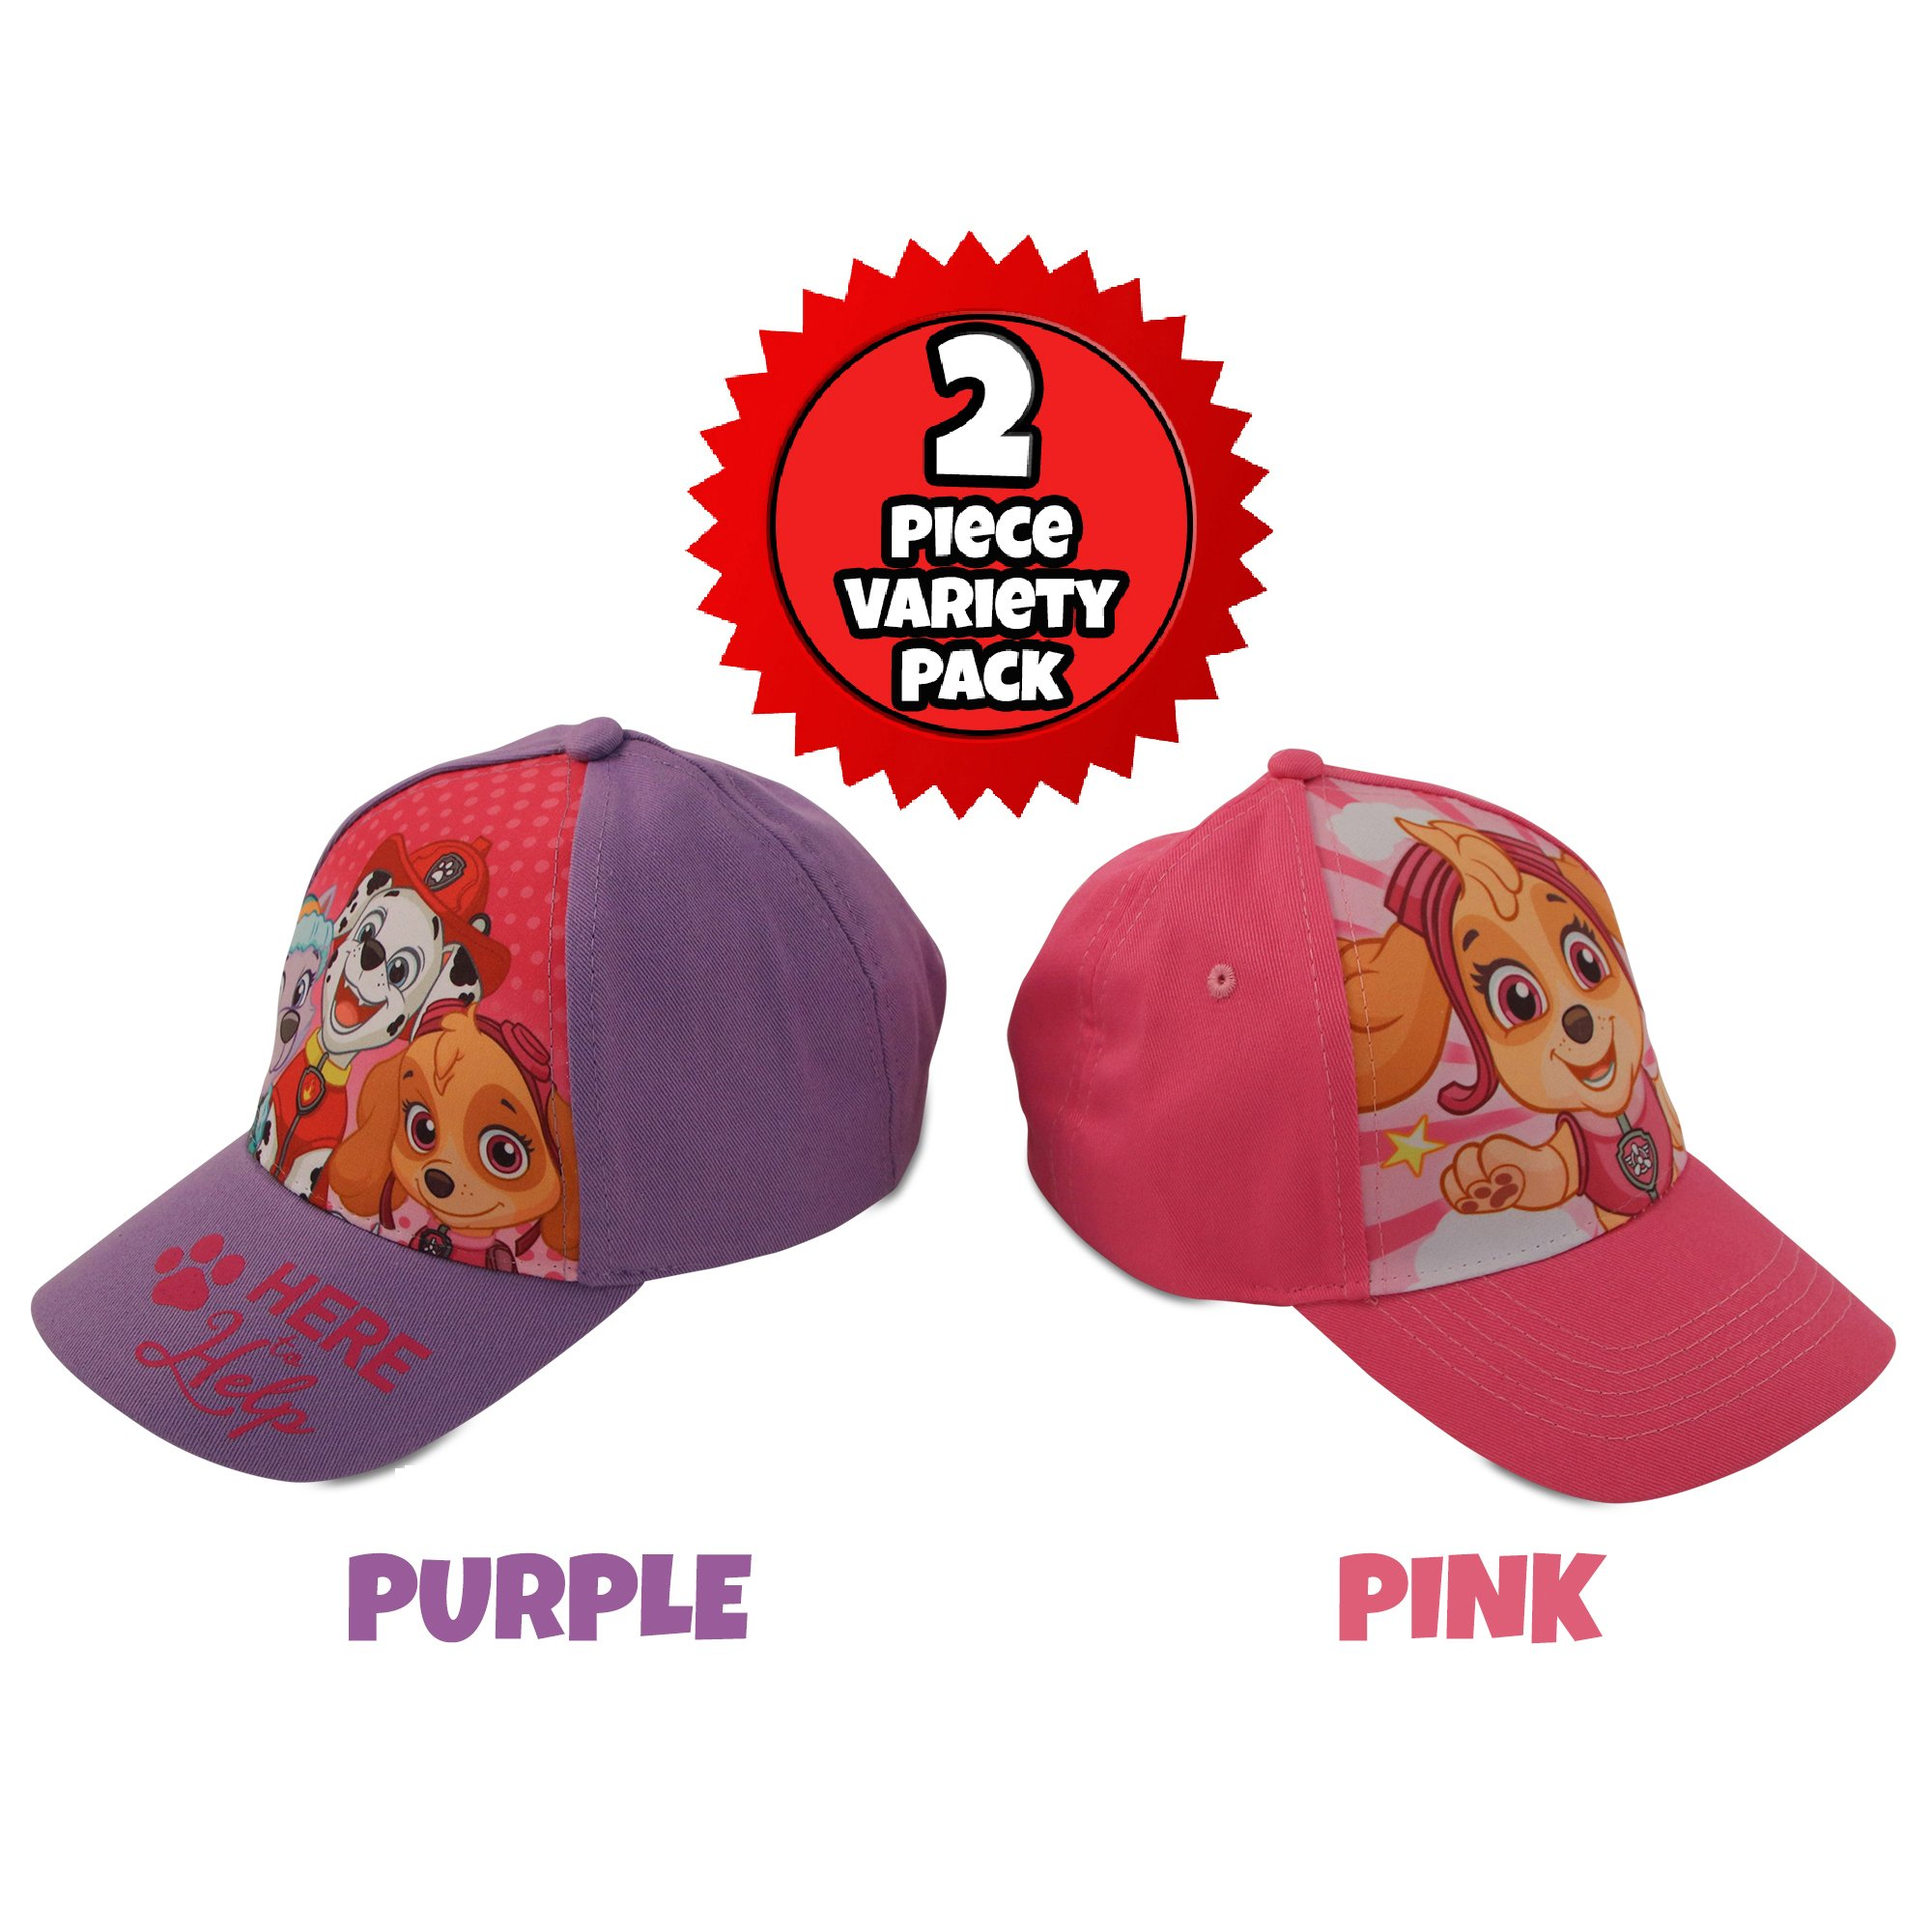 Nickelodeon Little Girls Paw Patrol Character Cotton Baseball Cap, 2 Piece Design Set, Age 2-7 (Little Girls – Age 4-7 (53CM)) by Nickelodeon (Image #1)